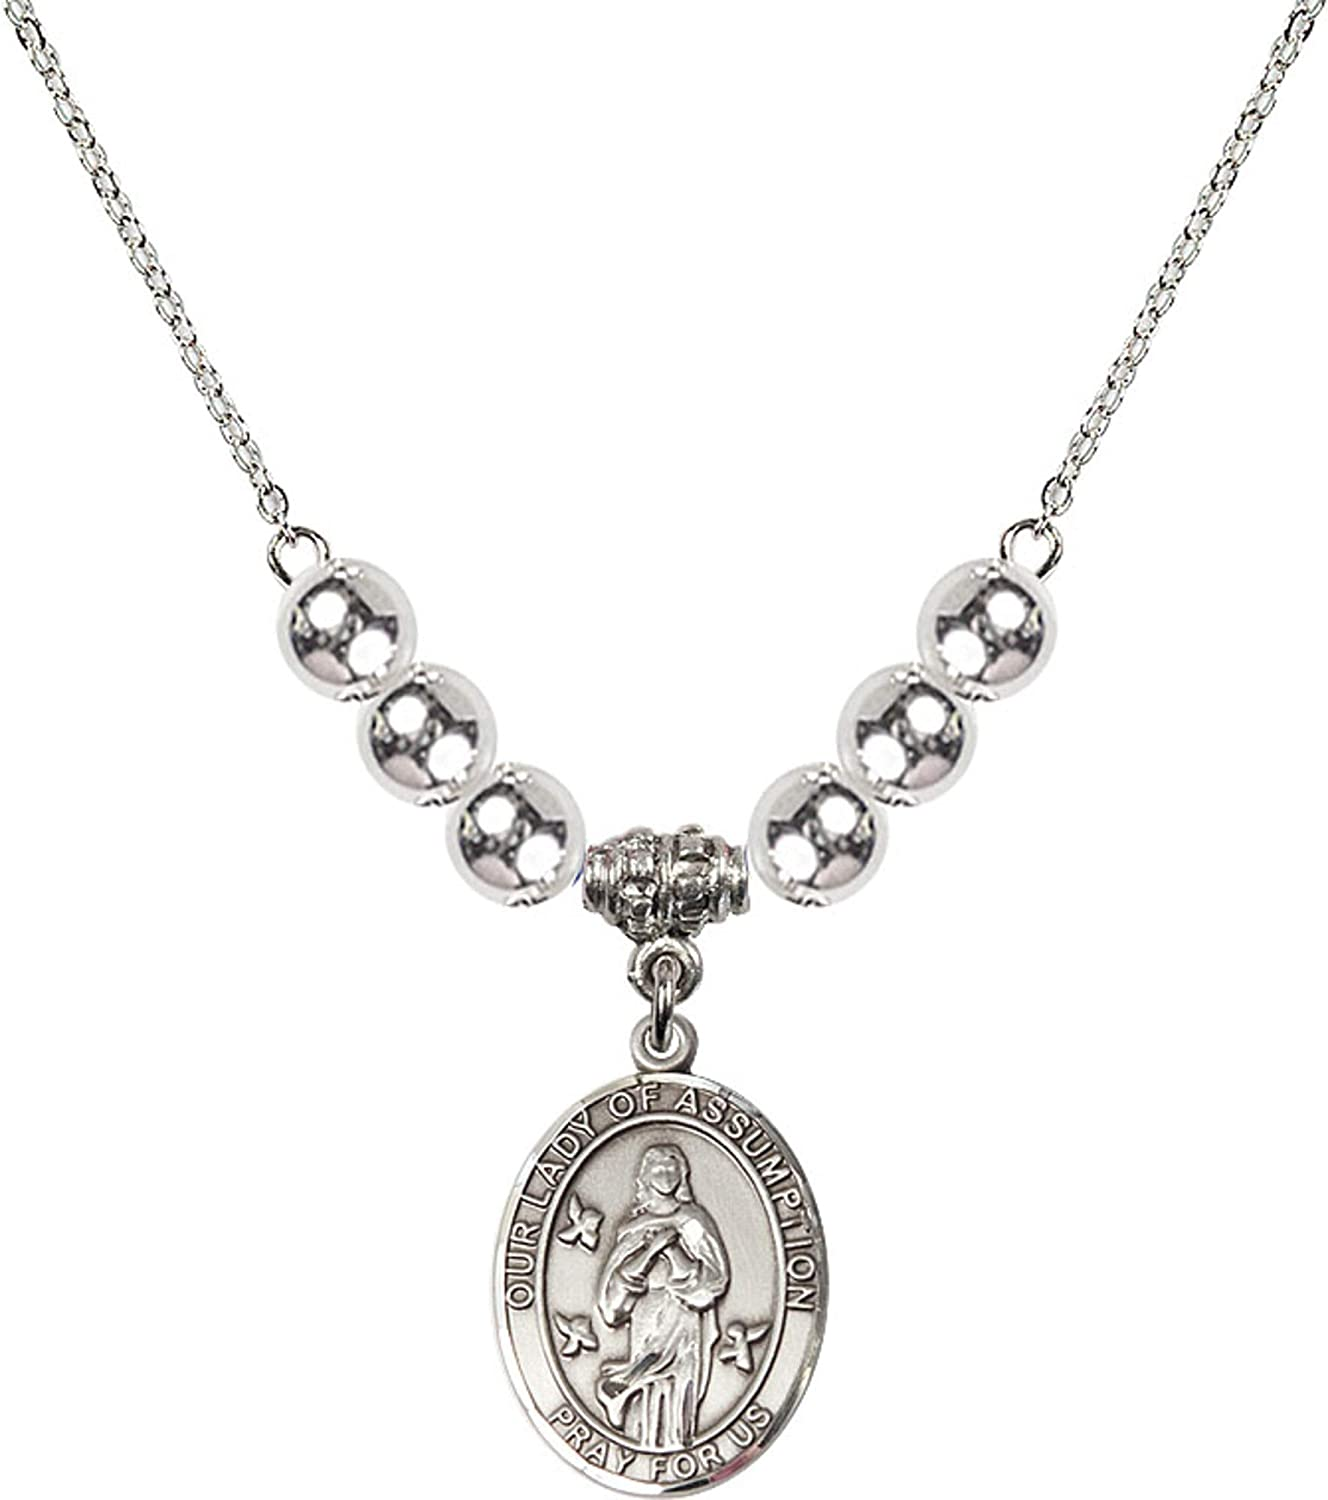 Bonyak Jewelry 18 Inch Rhodium Plated Necklace w// 6mm Sterling Silver Beads and Our Lady of Assumption Charm